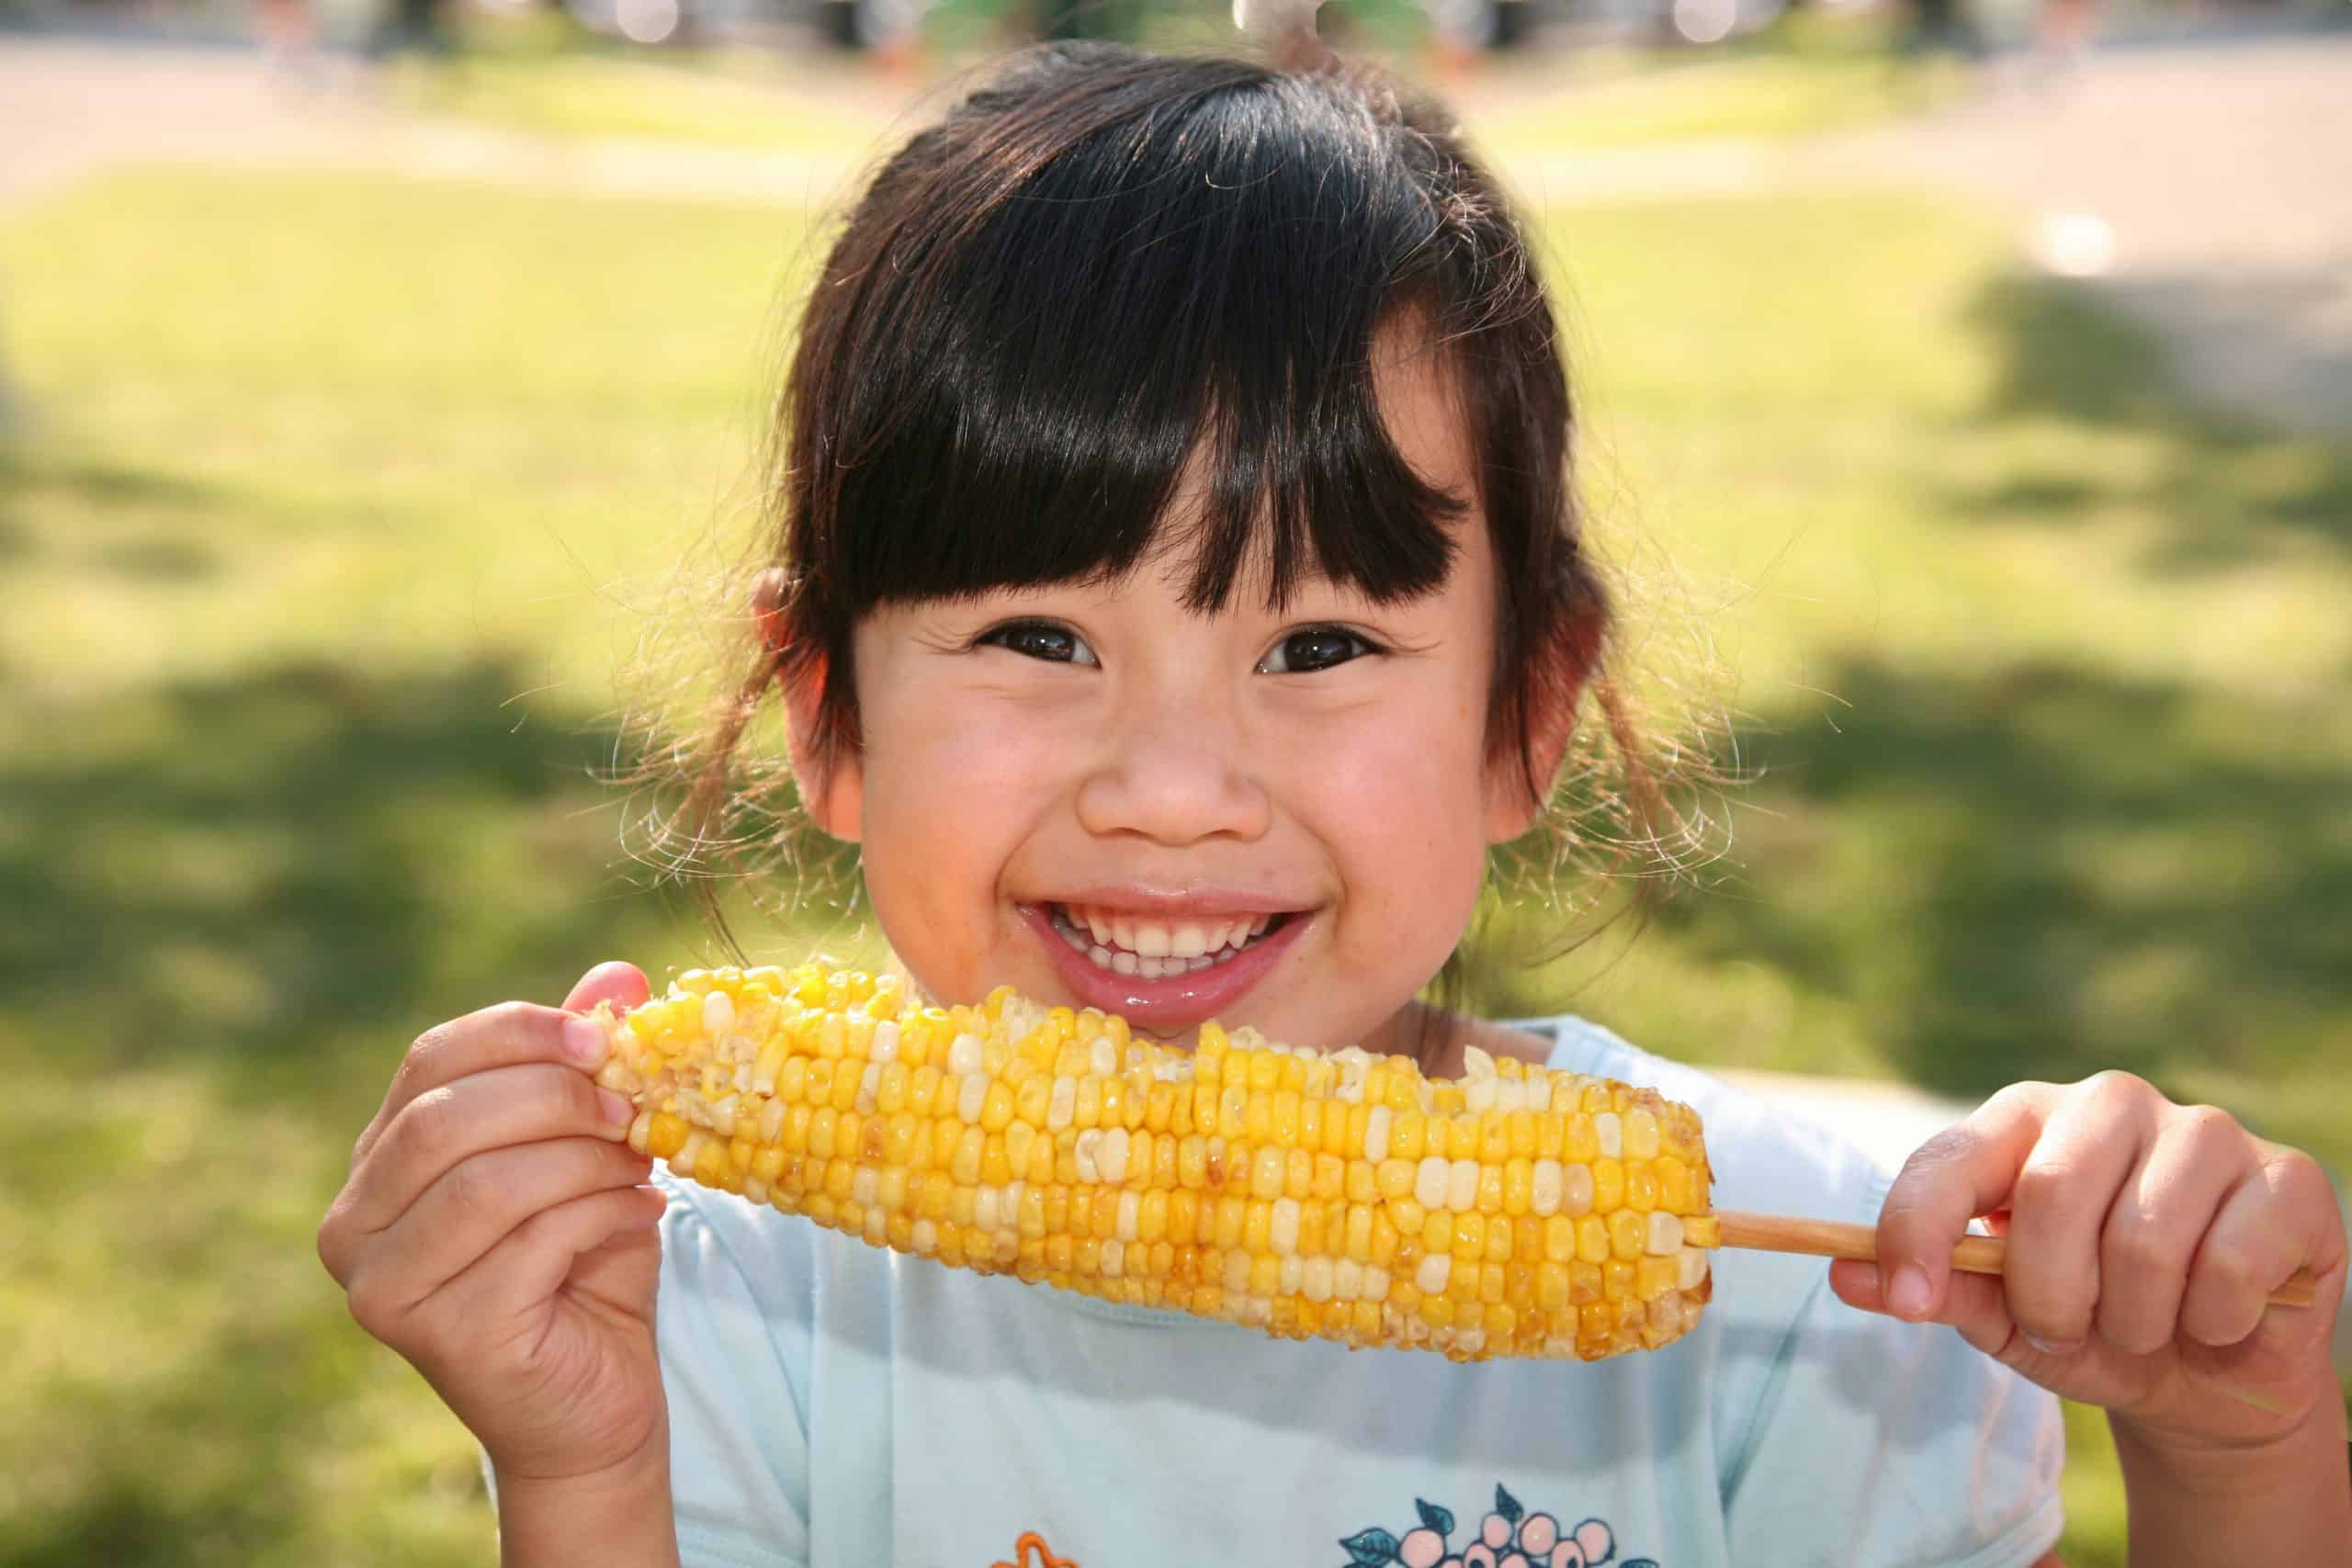 Sweet corn recipes - Asian girl with dark hair in park smiling while eating corn on the cob